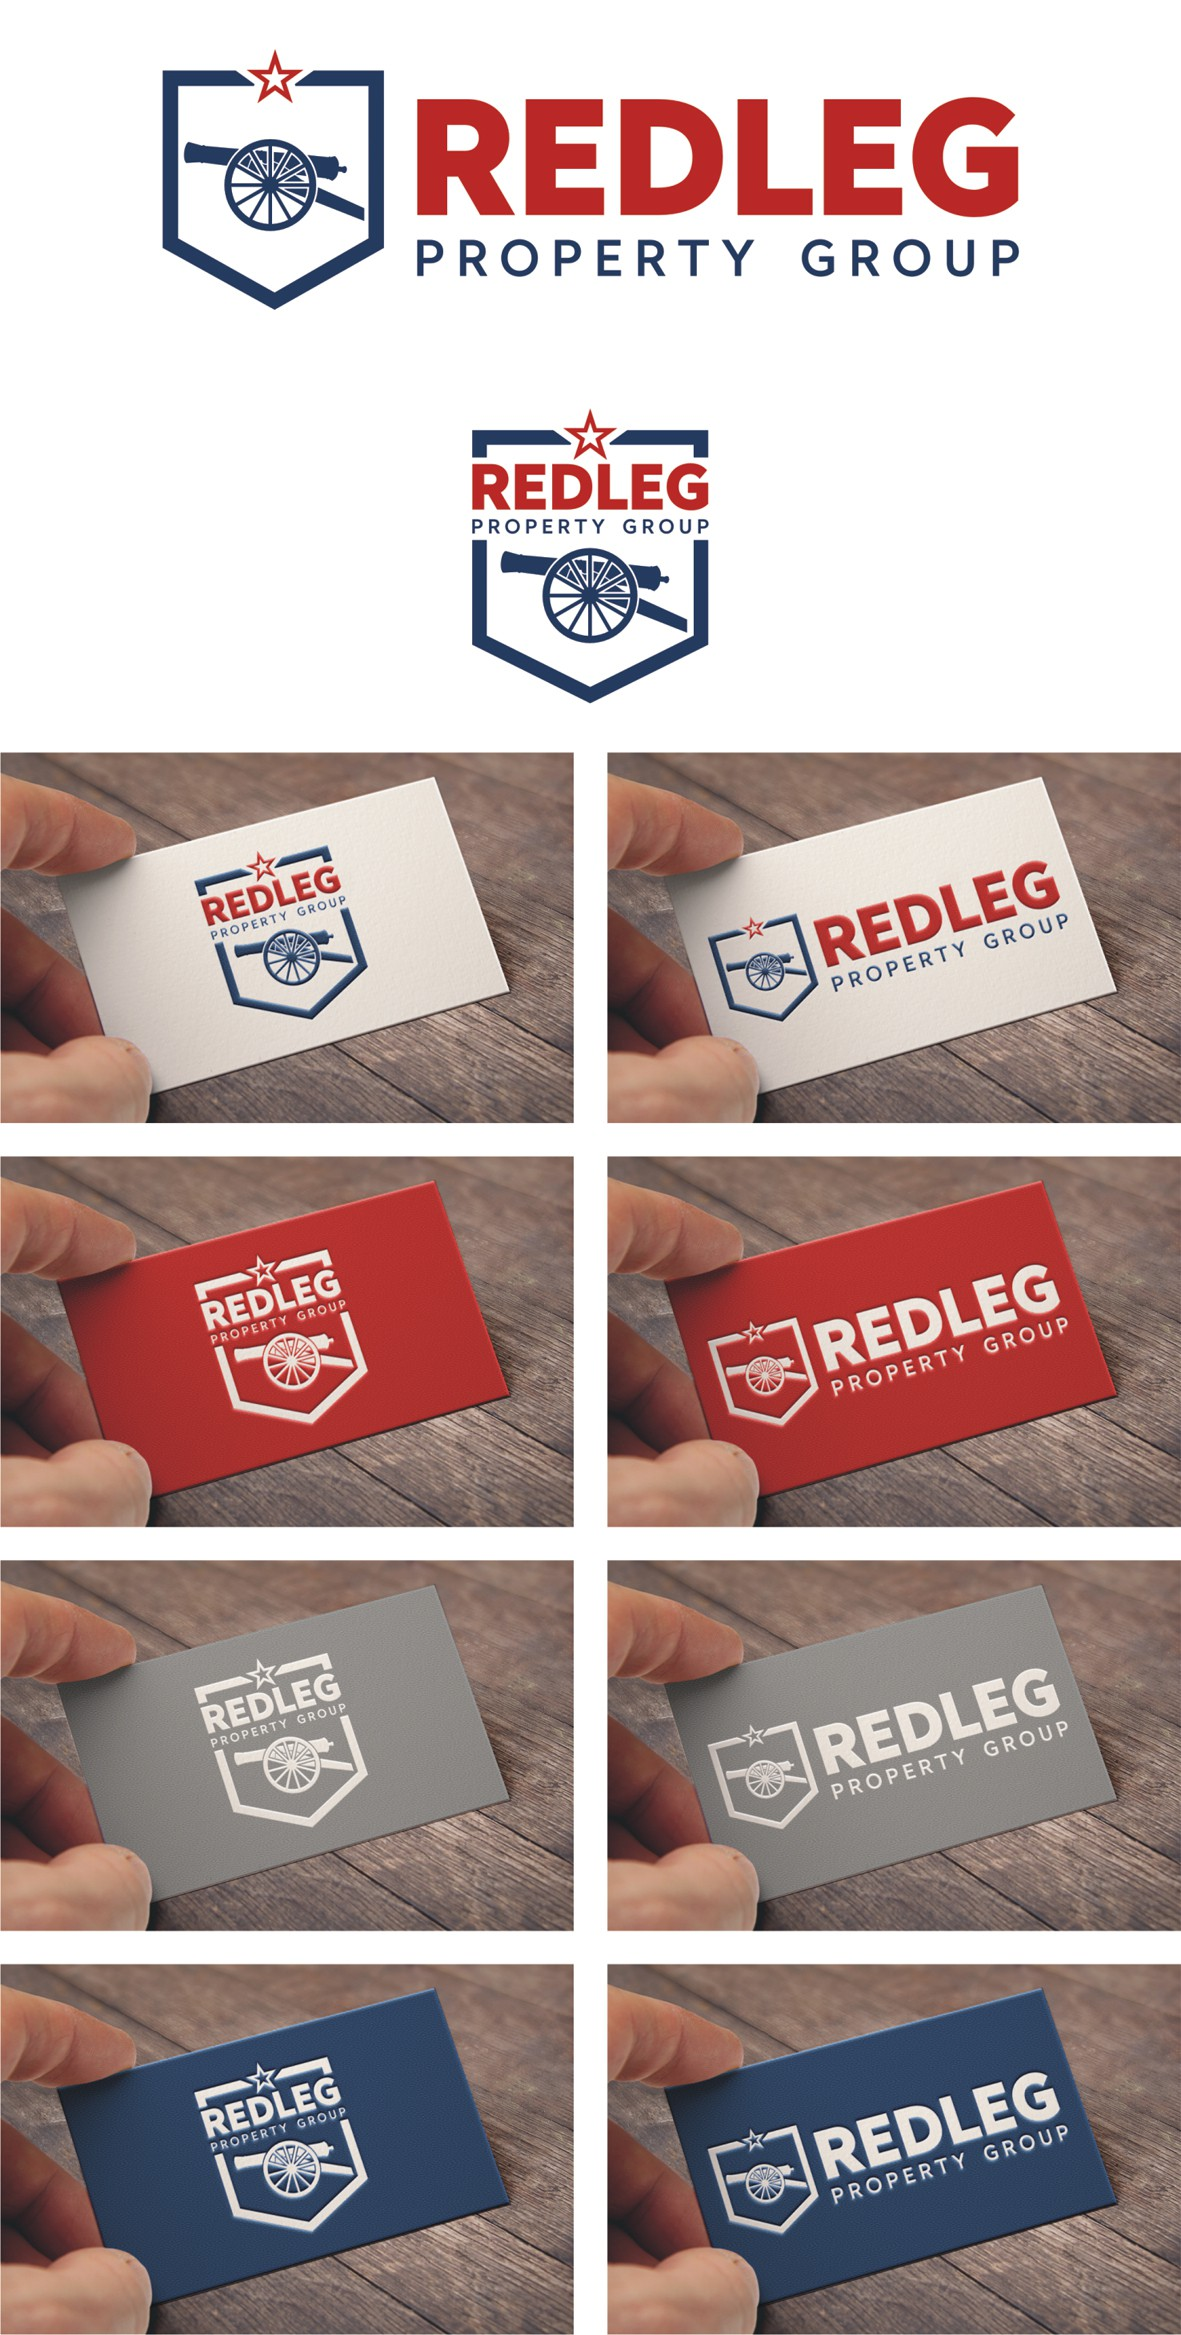 Create a modern artillery themed logo for Redleg Property Group